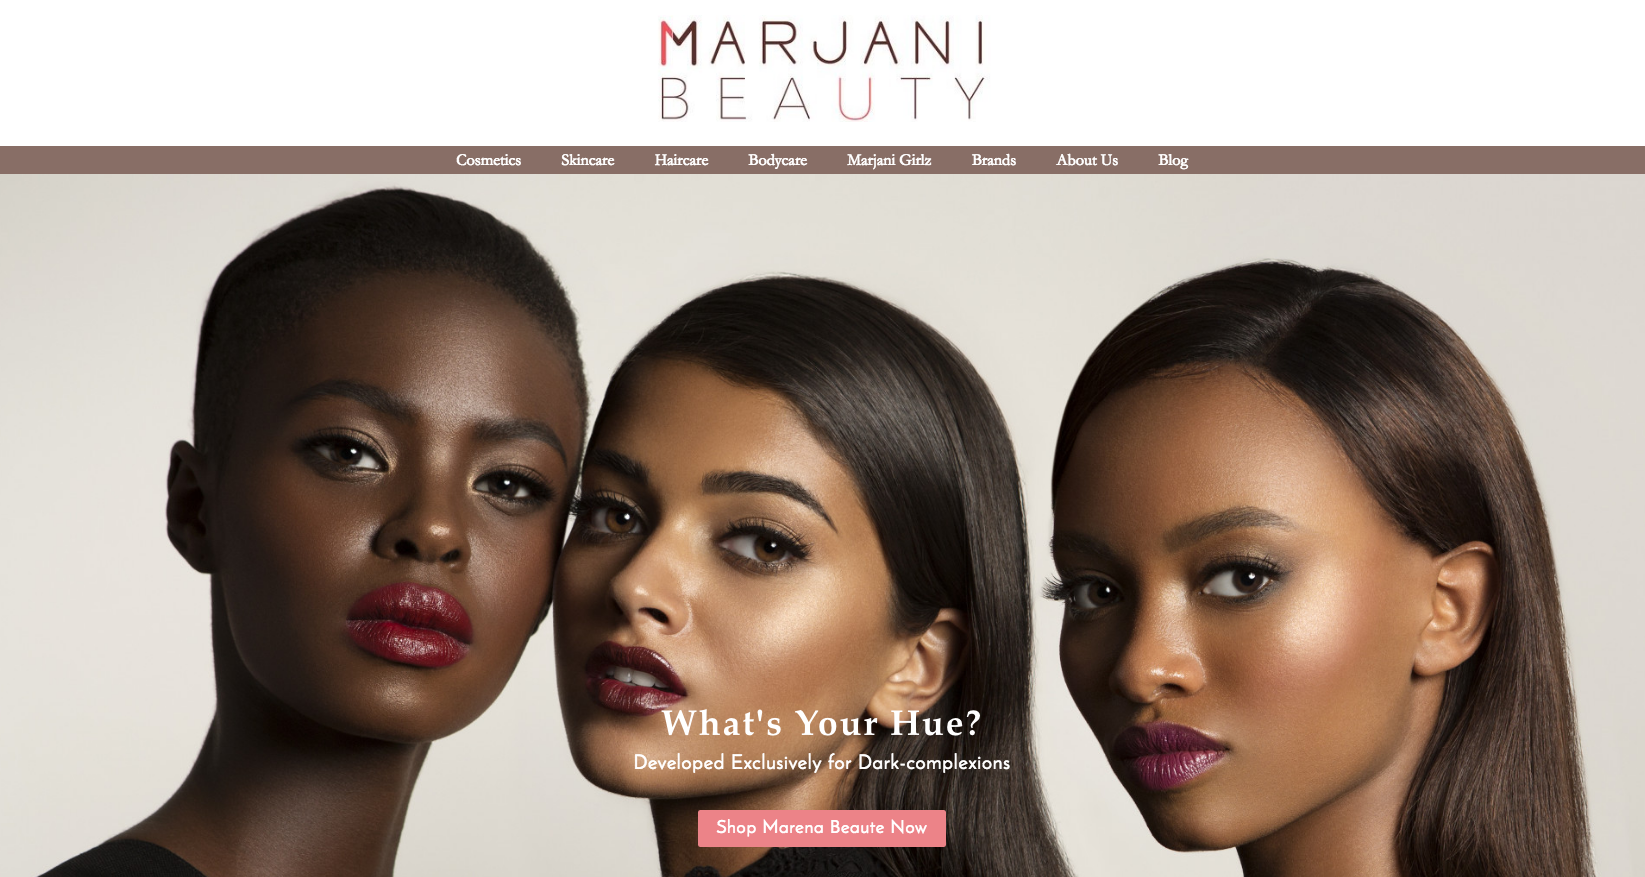 Marjani is a New Brown Online Beauty Store by Another Black Woman